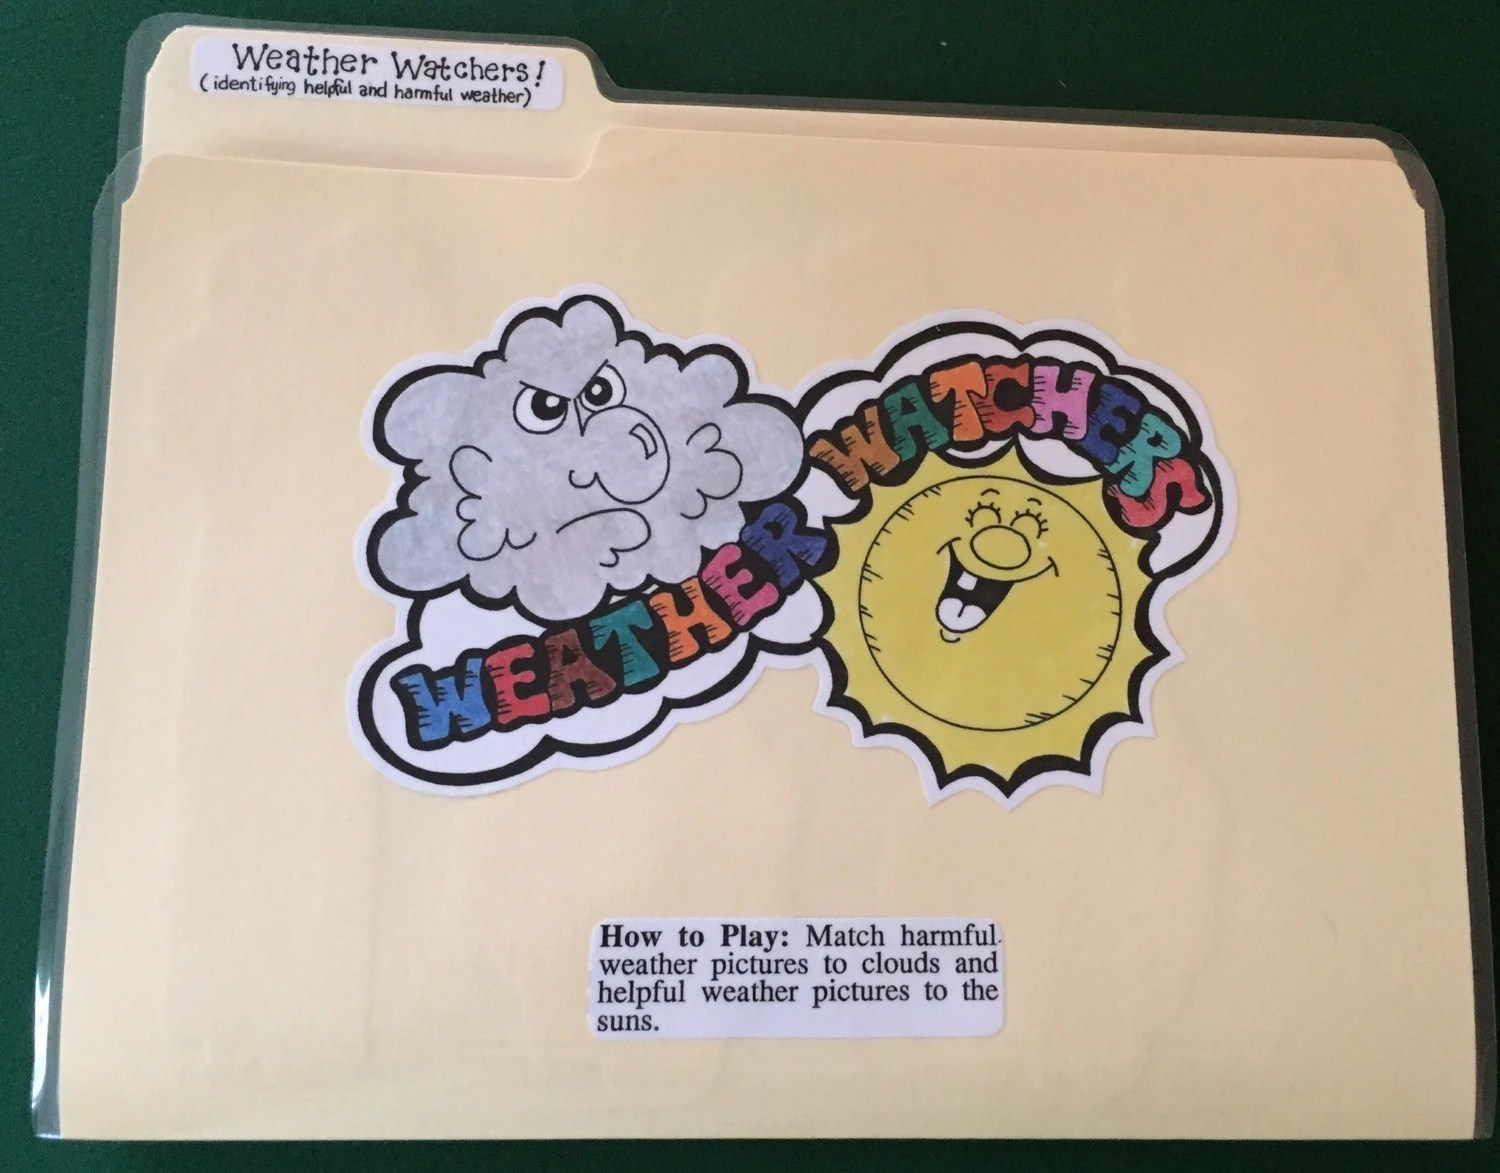 Weather Watchers Weather File Folder Game Ready To Play